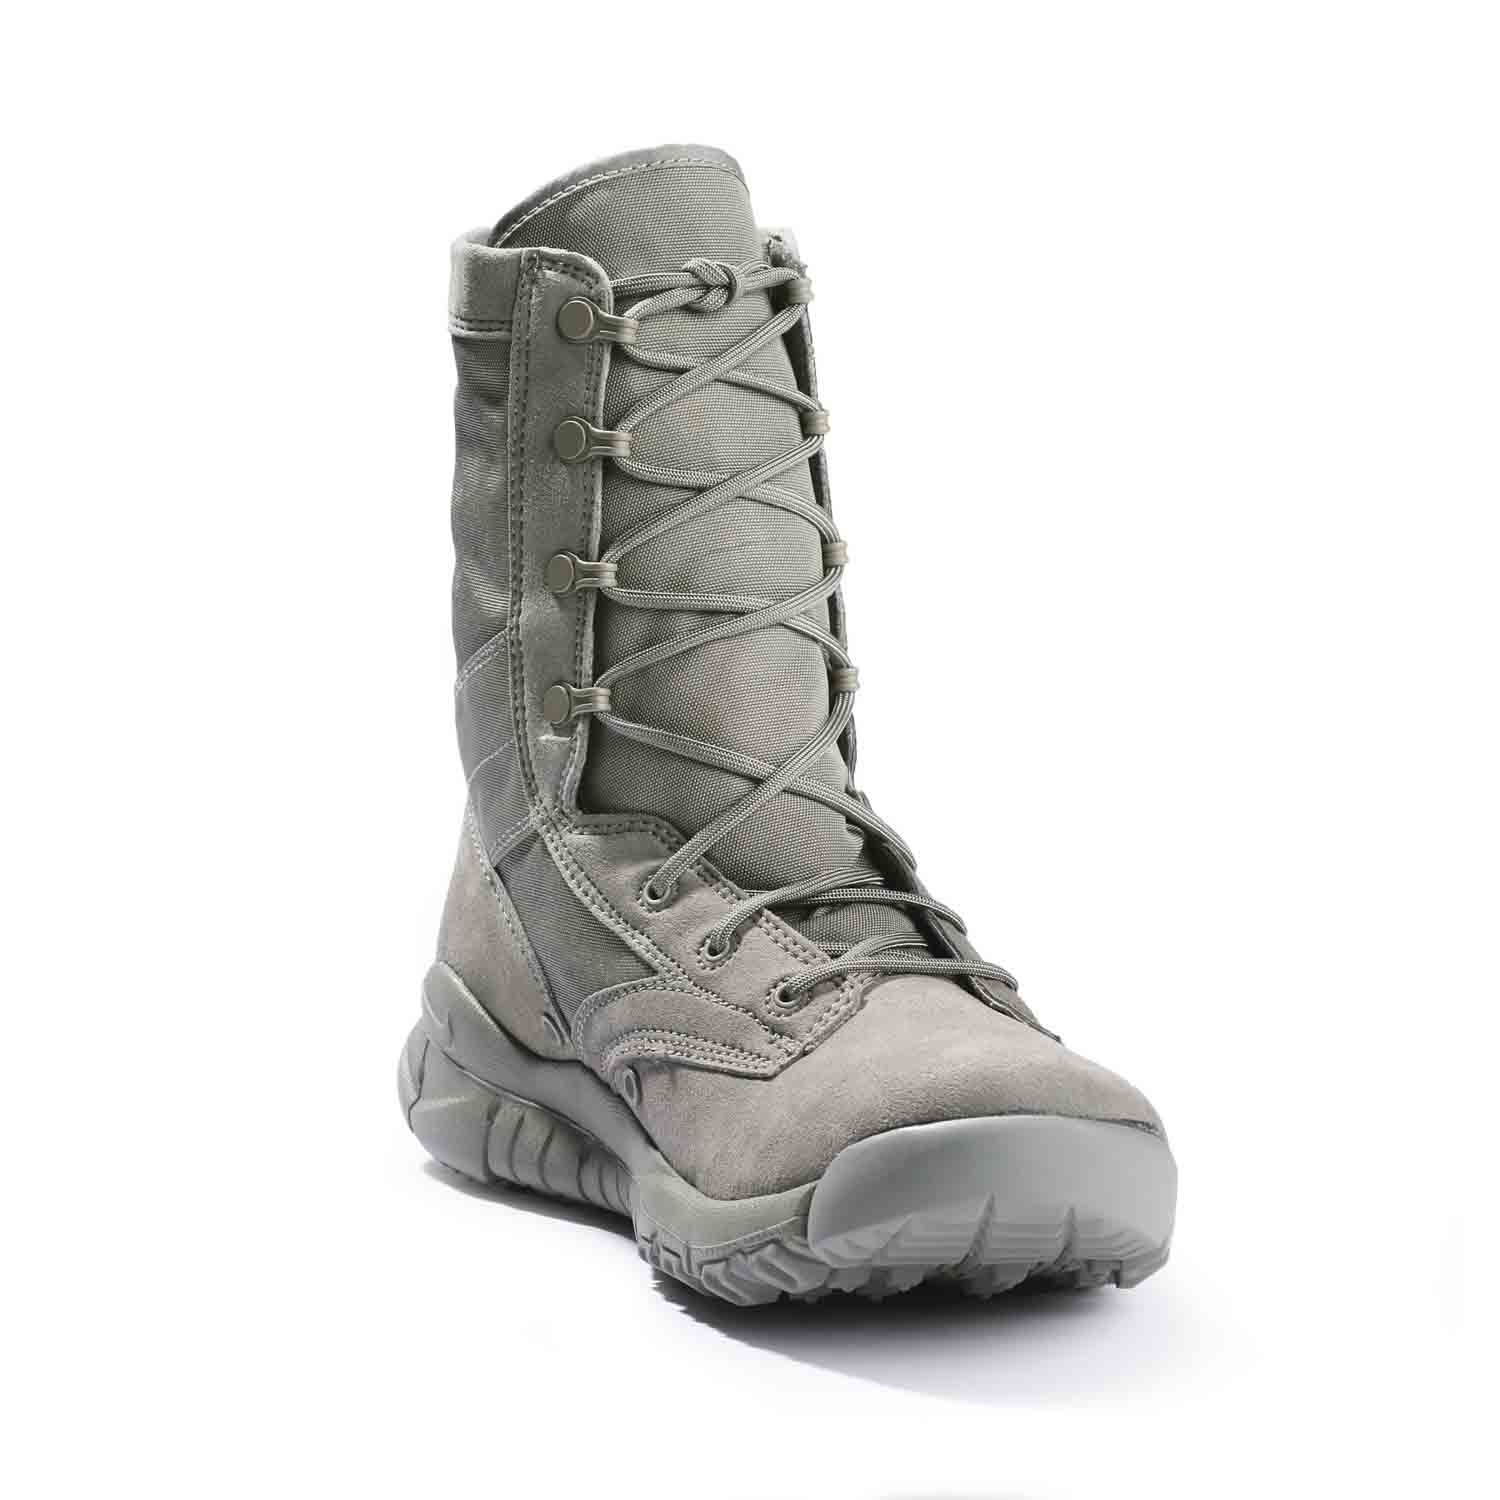 Nike Special Field Boot Sage Green.